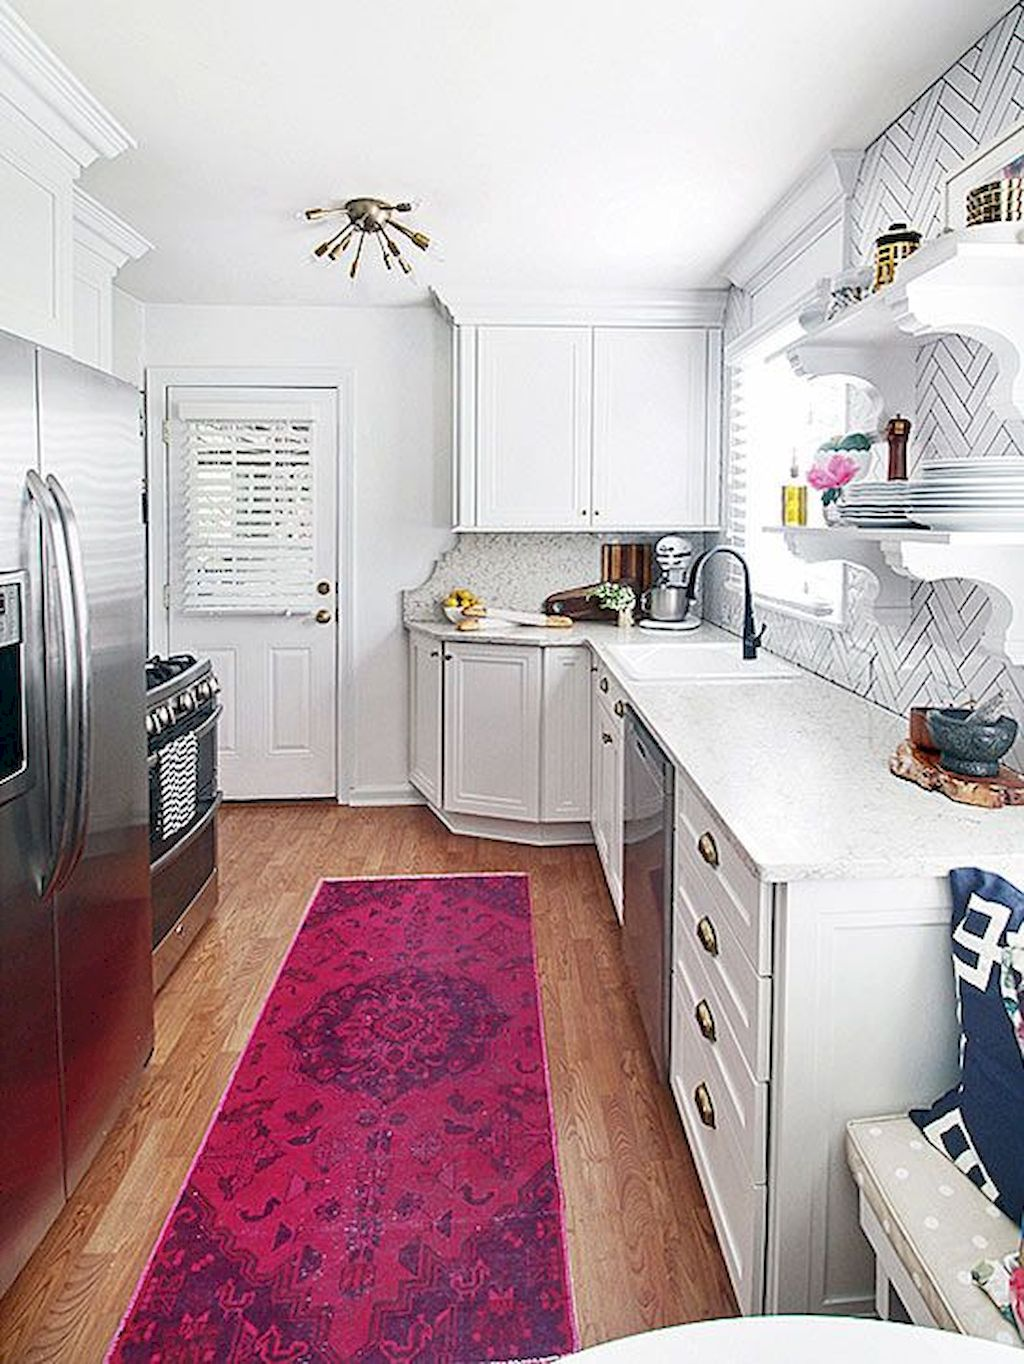 Kitchen Plan And Design For Small Room (19)